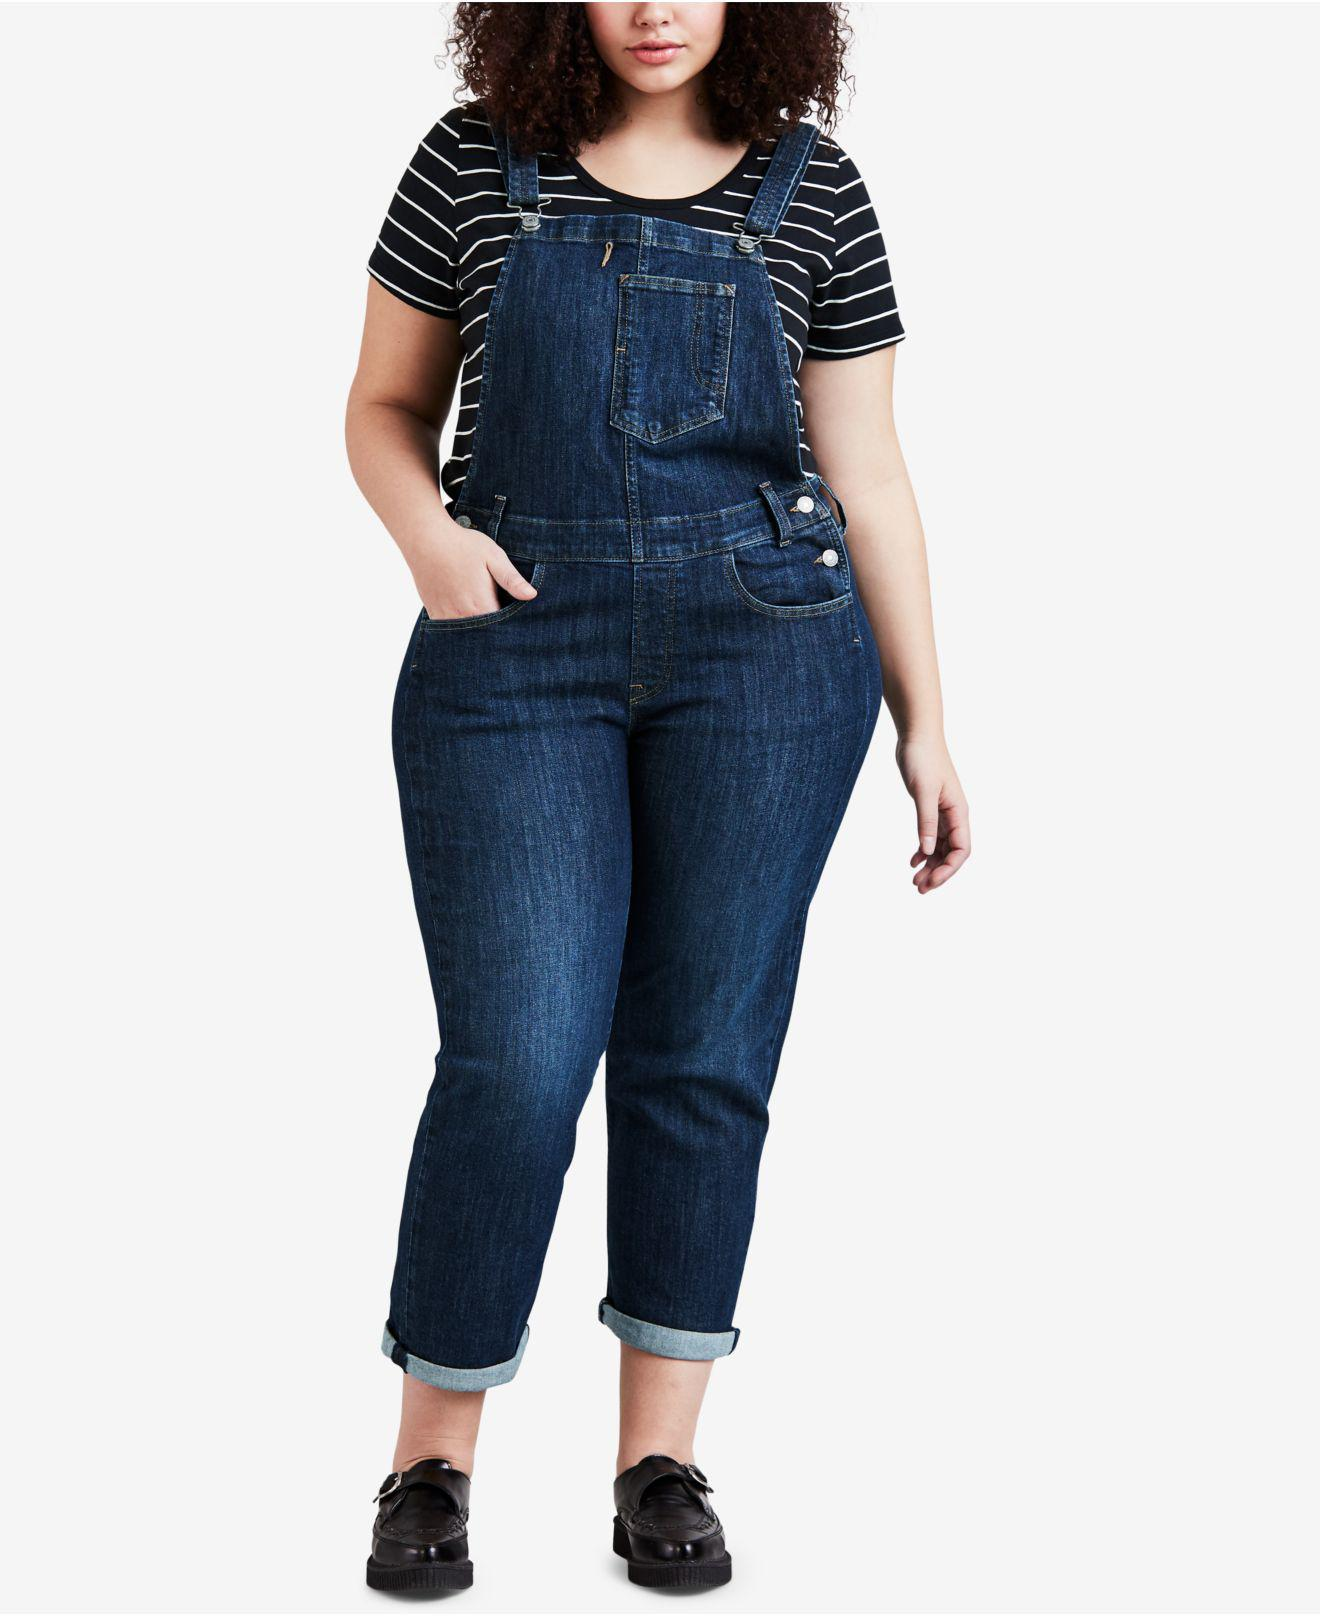 f5548a9db54 Lyst - Levi s ® Plus Size Denim Overalls in Blue